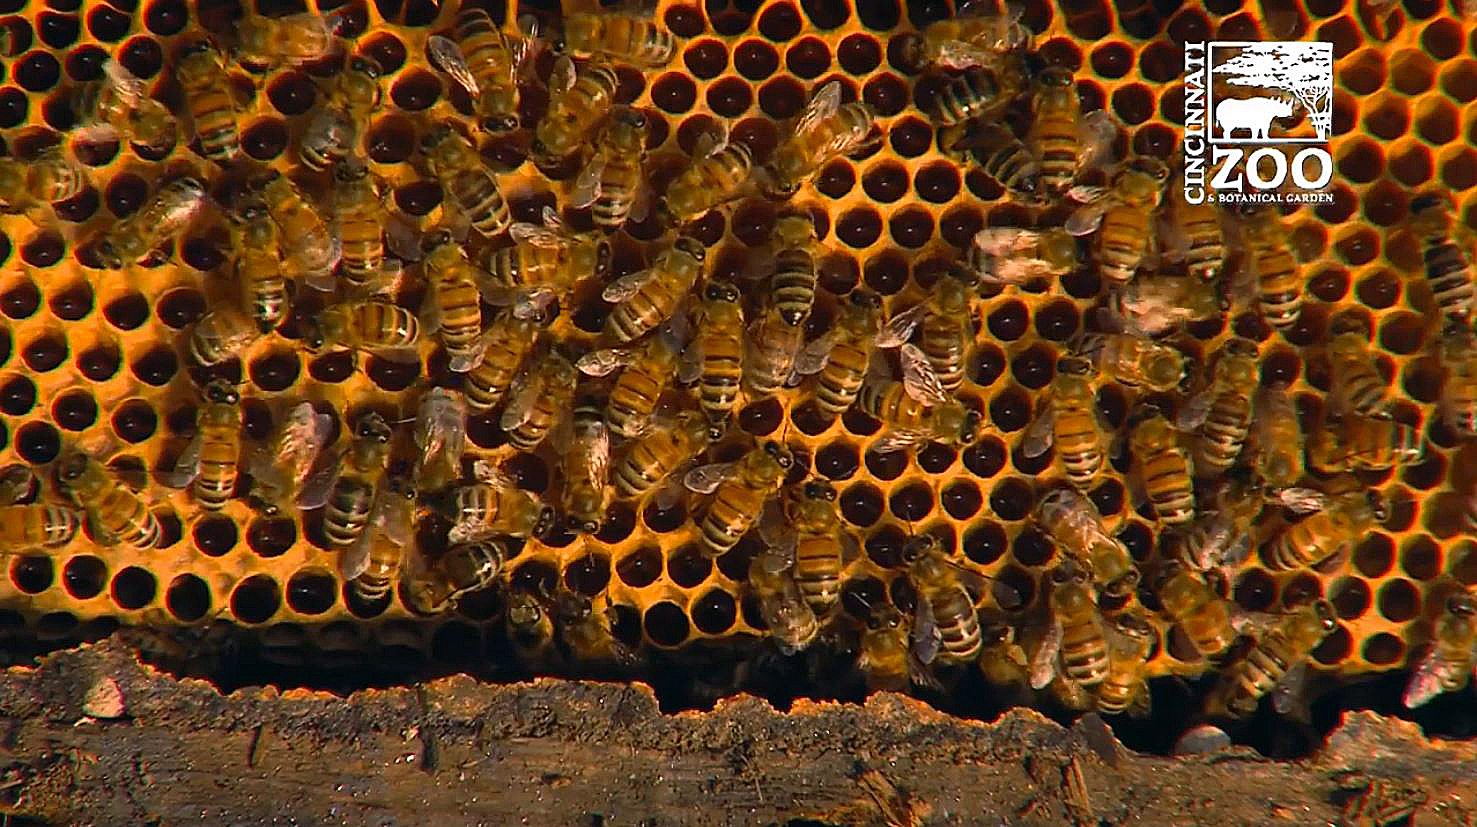 50,000 honeybees removed from wall of garage, taken to zoo